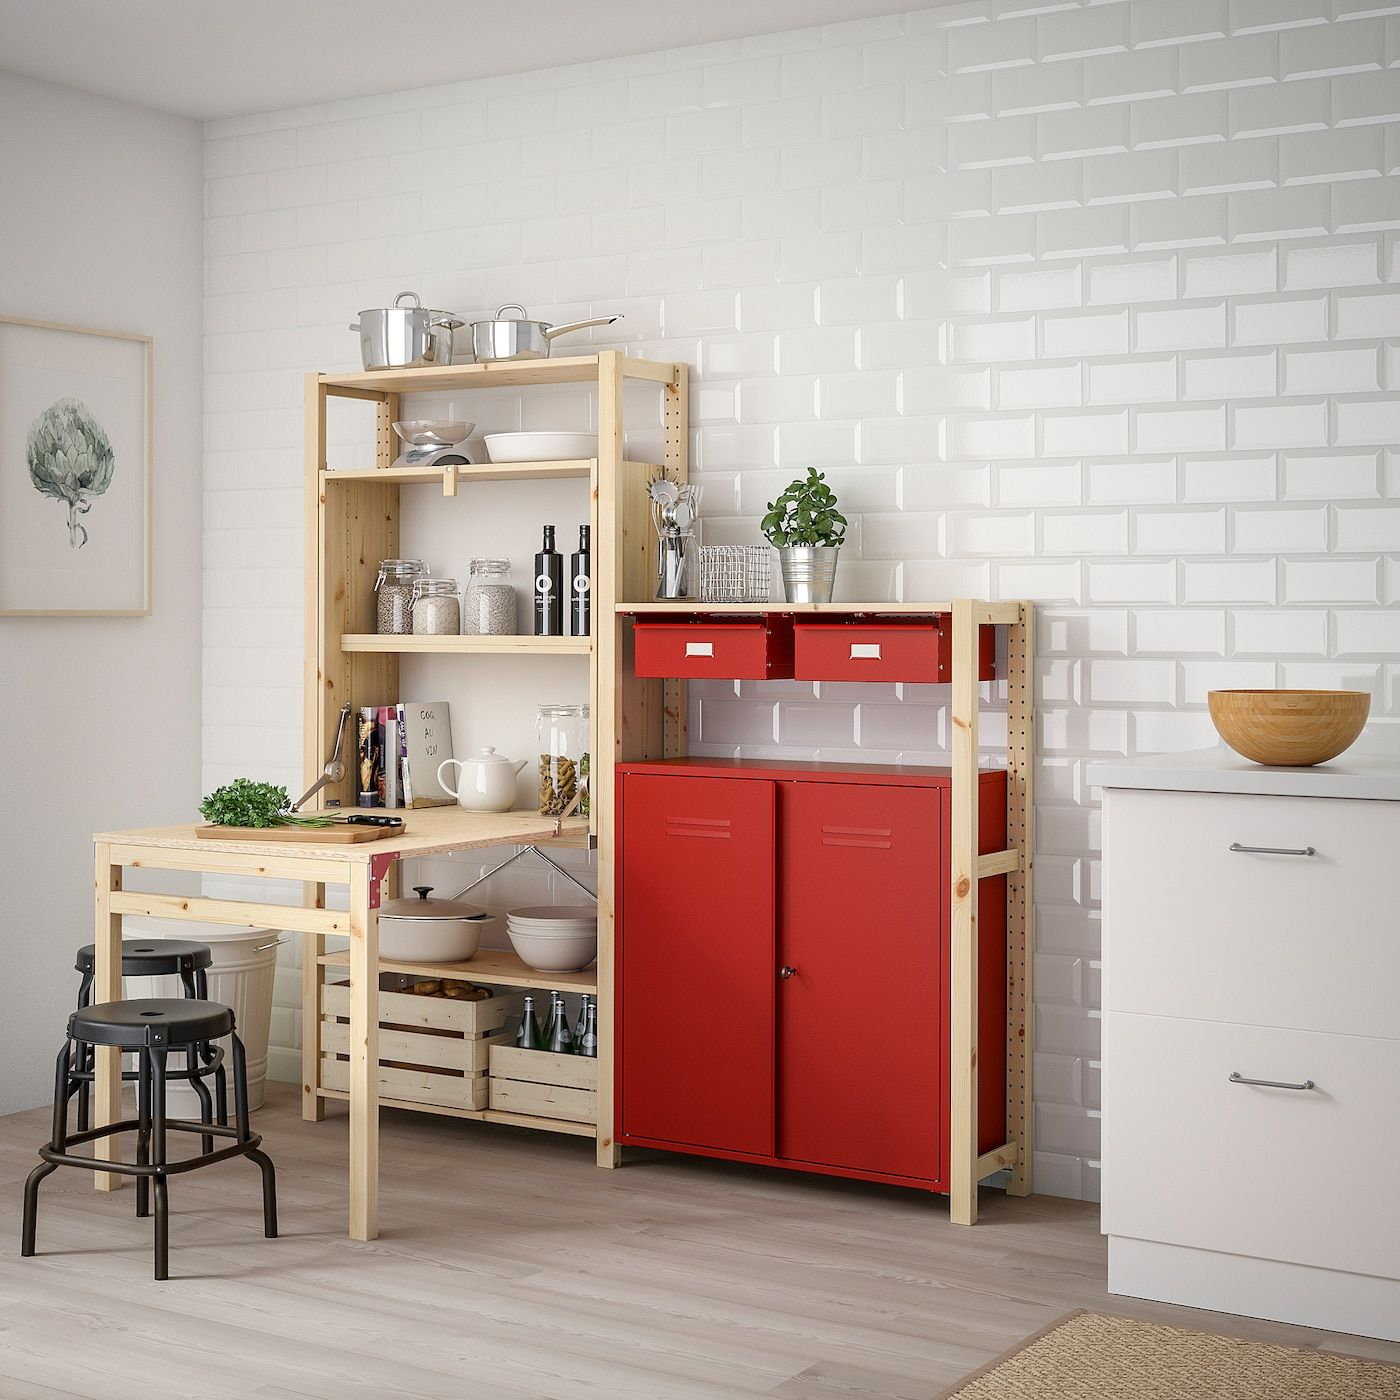 Ivar Shelv Unit W Table Cabinets Drawers Pine Red 175x30